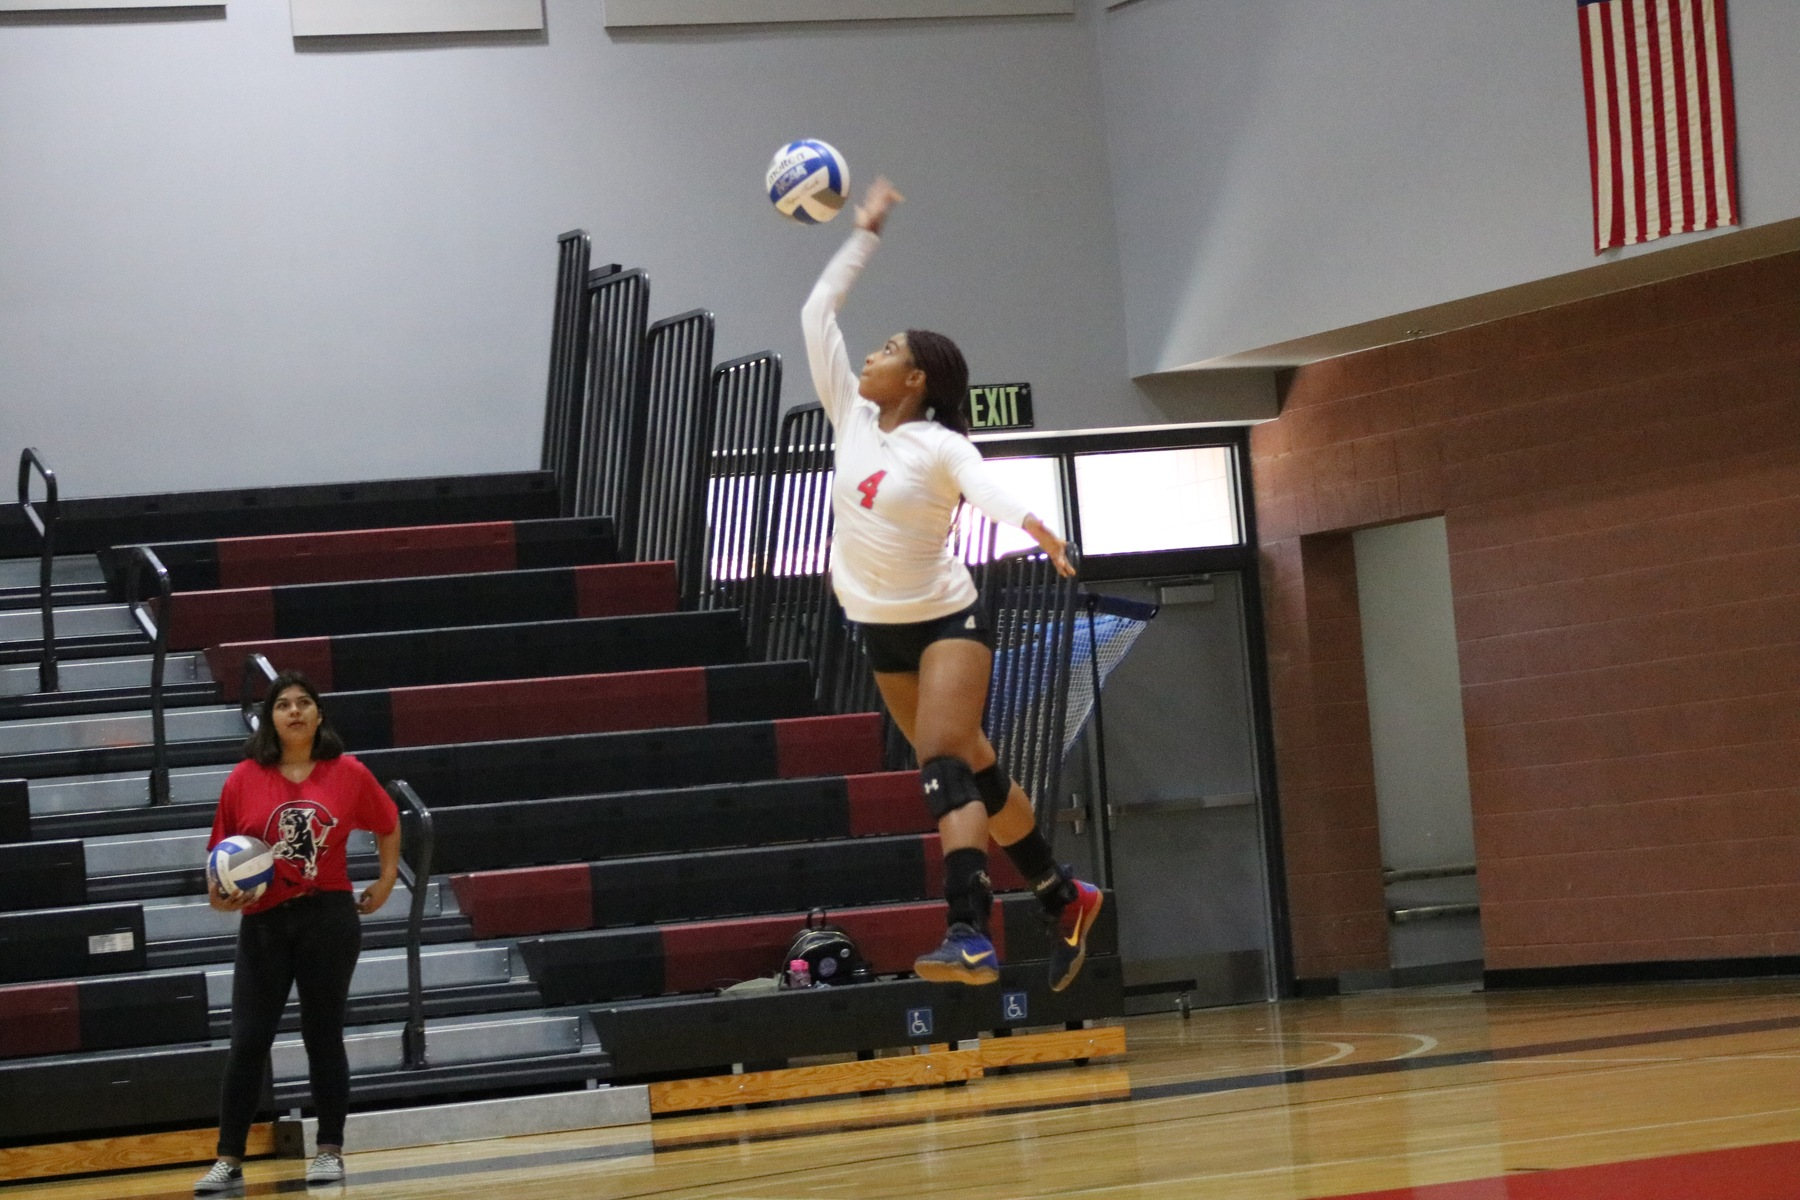 Women's volleyball player serves ball